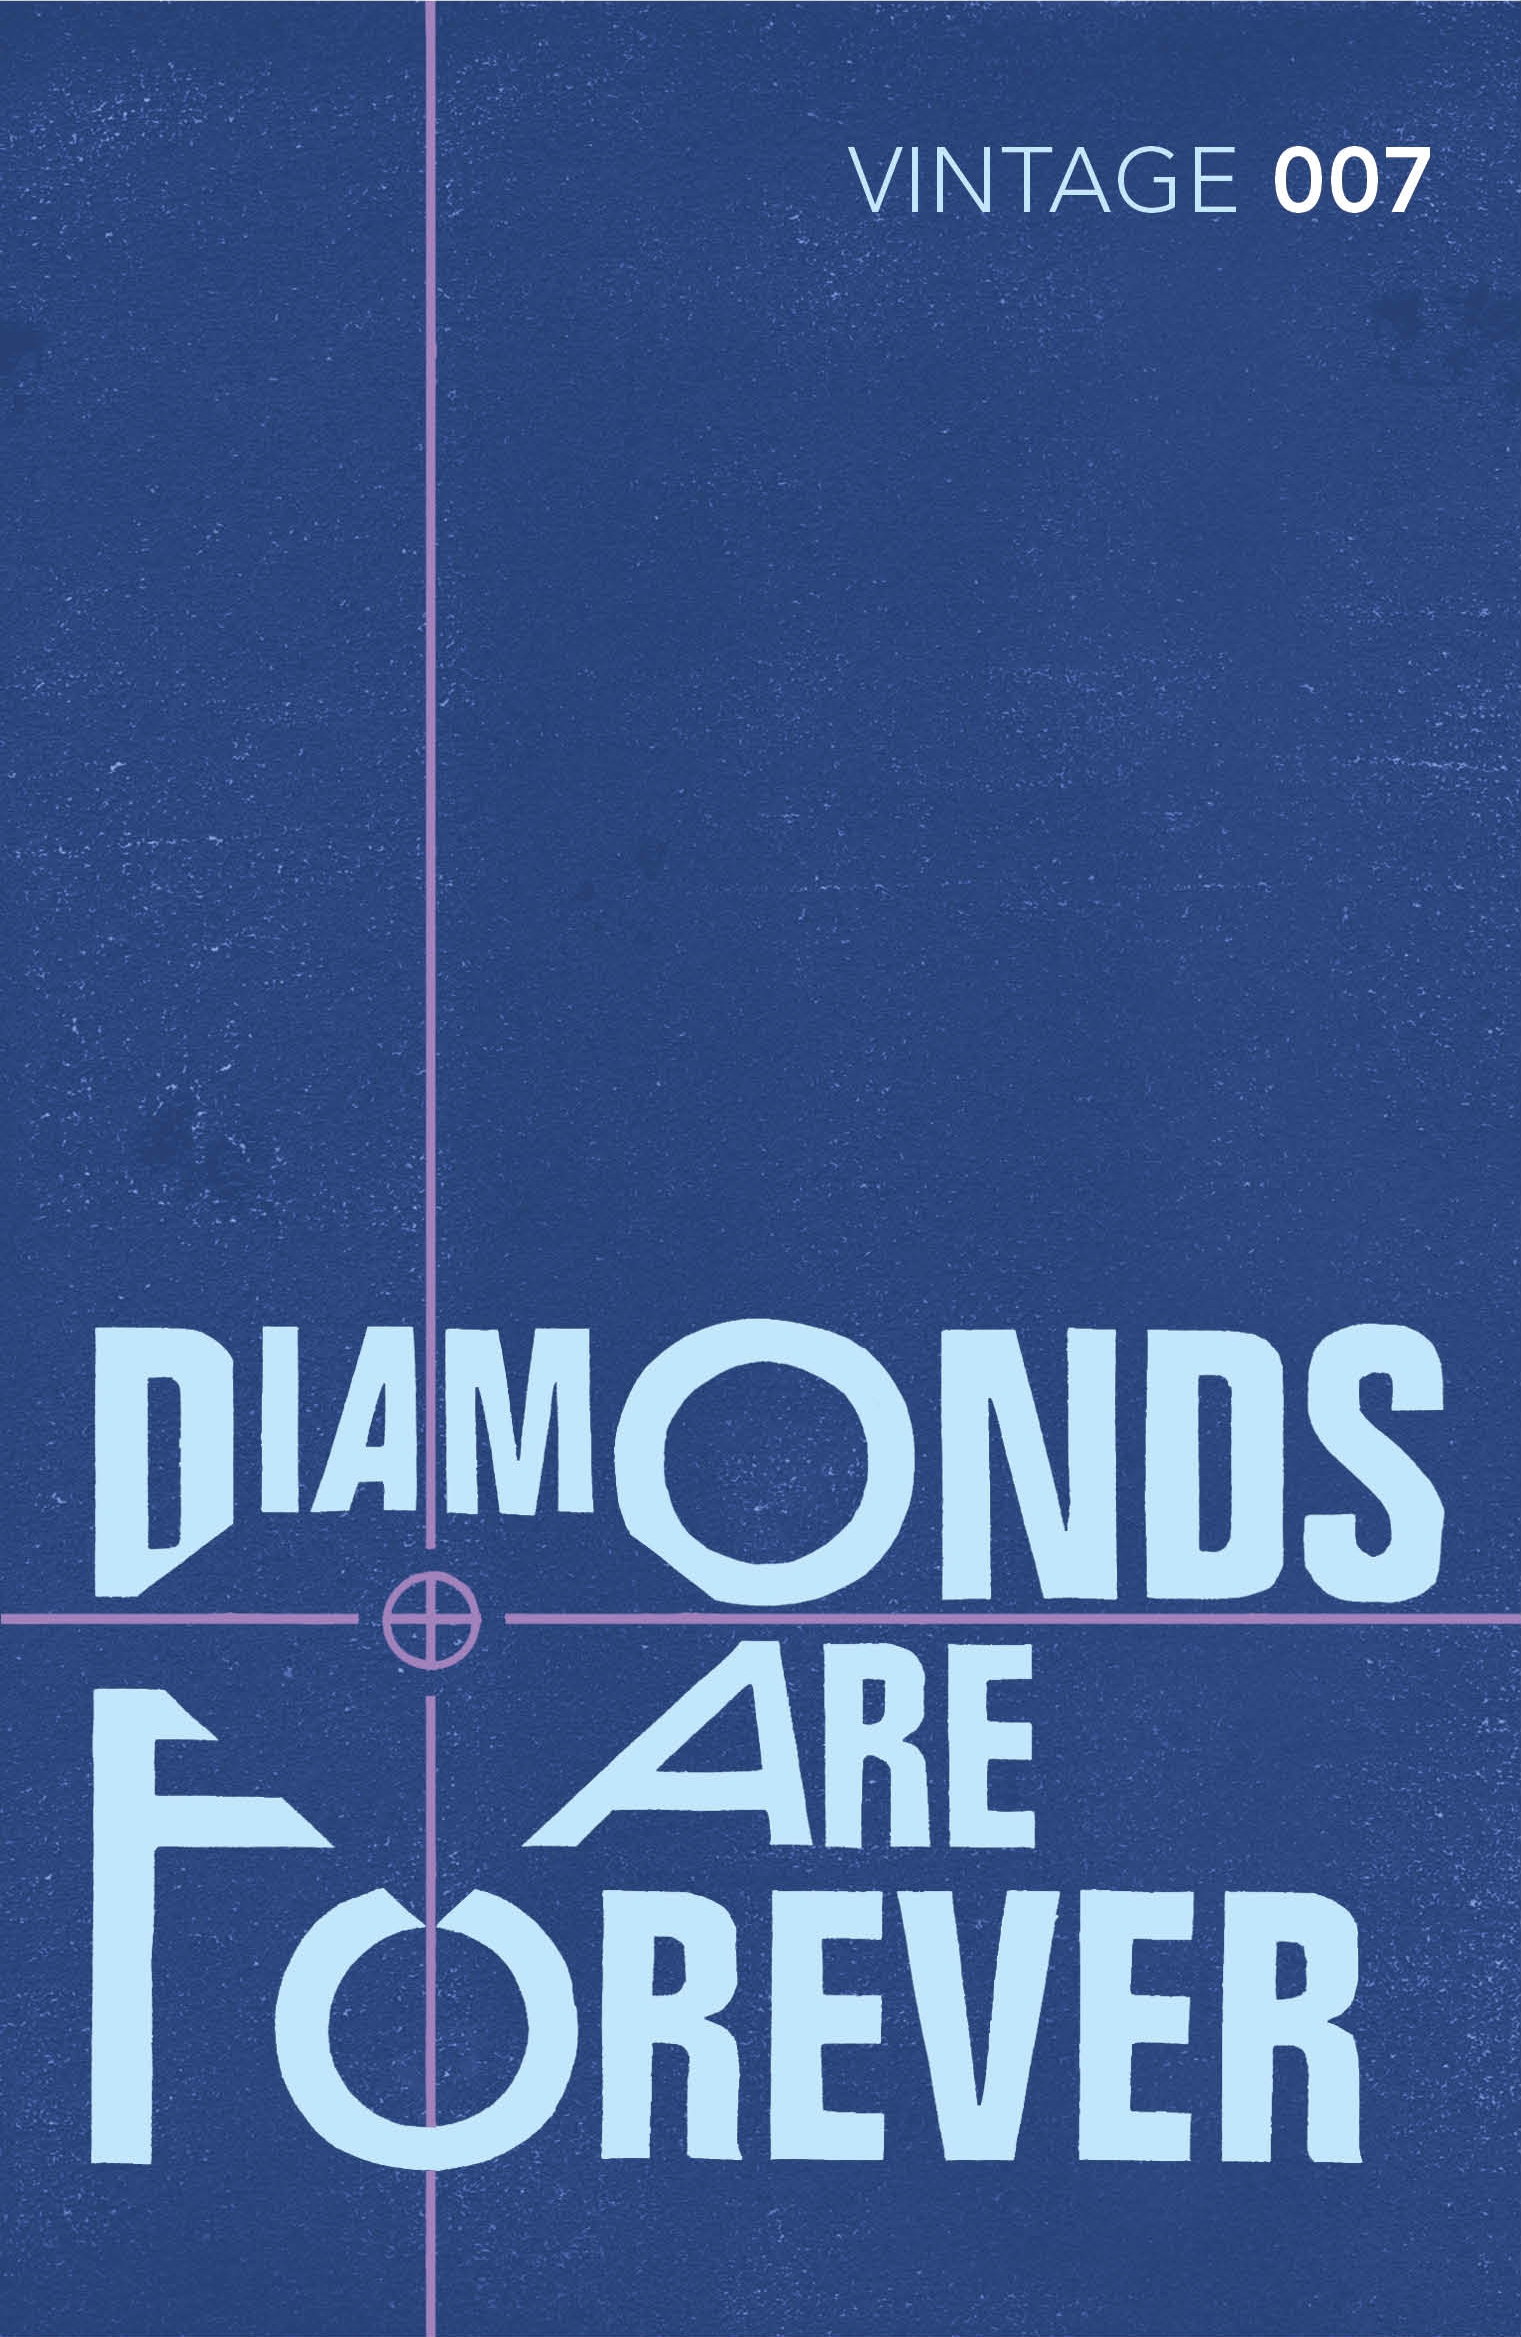 Original Penguin Book Covers : Diamonds are forever by ian fleming penguin books australia